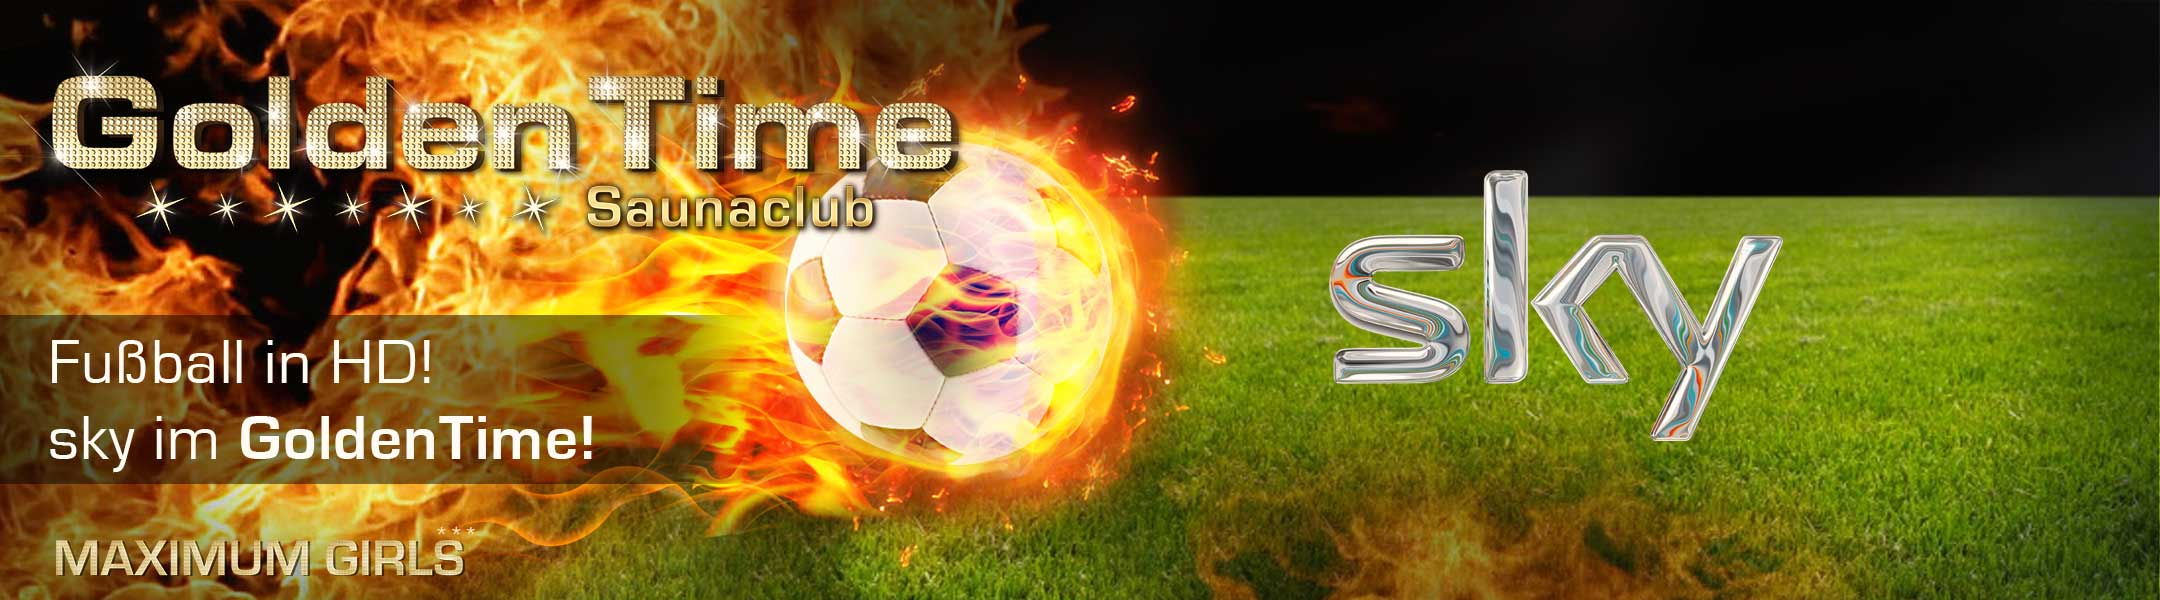 Fussball in HD! sky im GoldenTime!